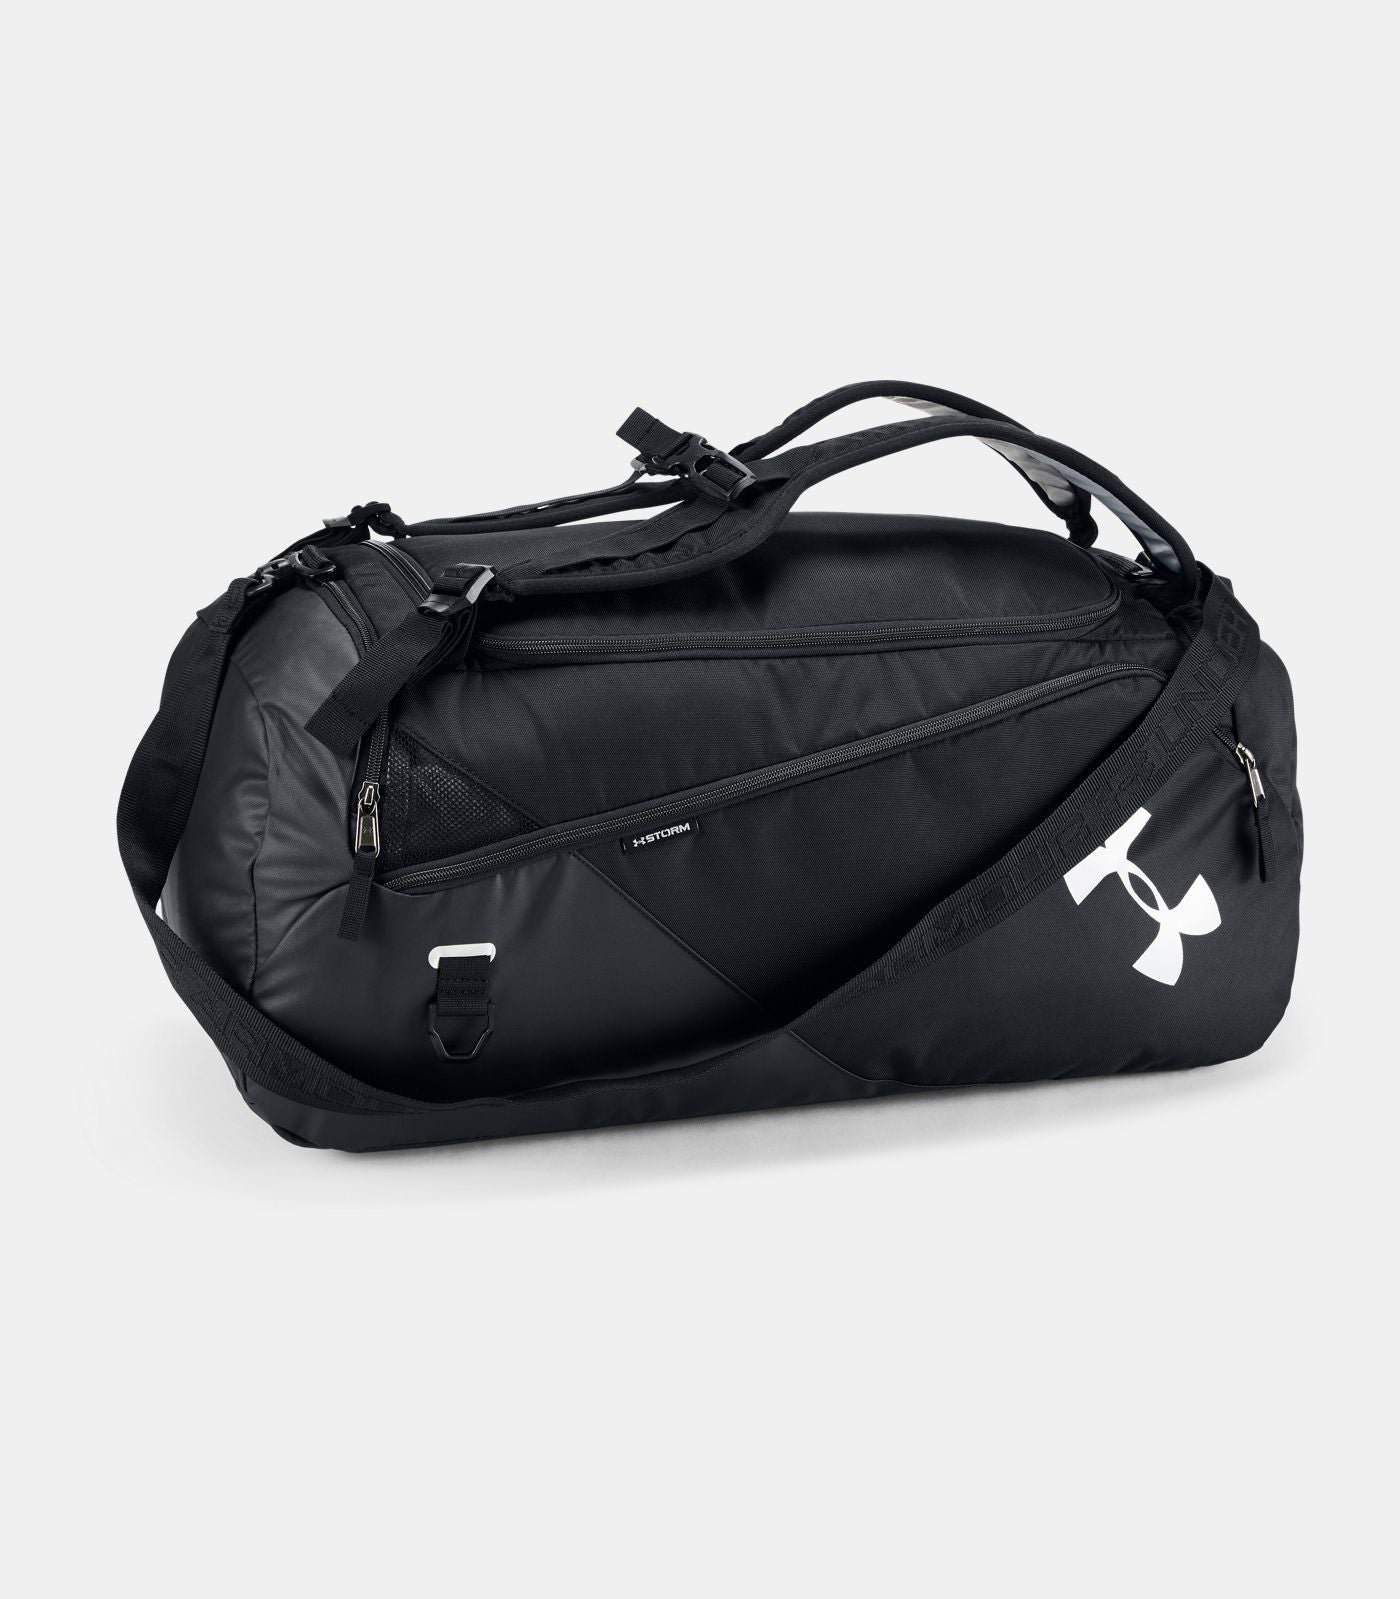 Under Armour Contain 4.0 Backpack Duffel